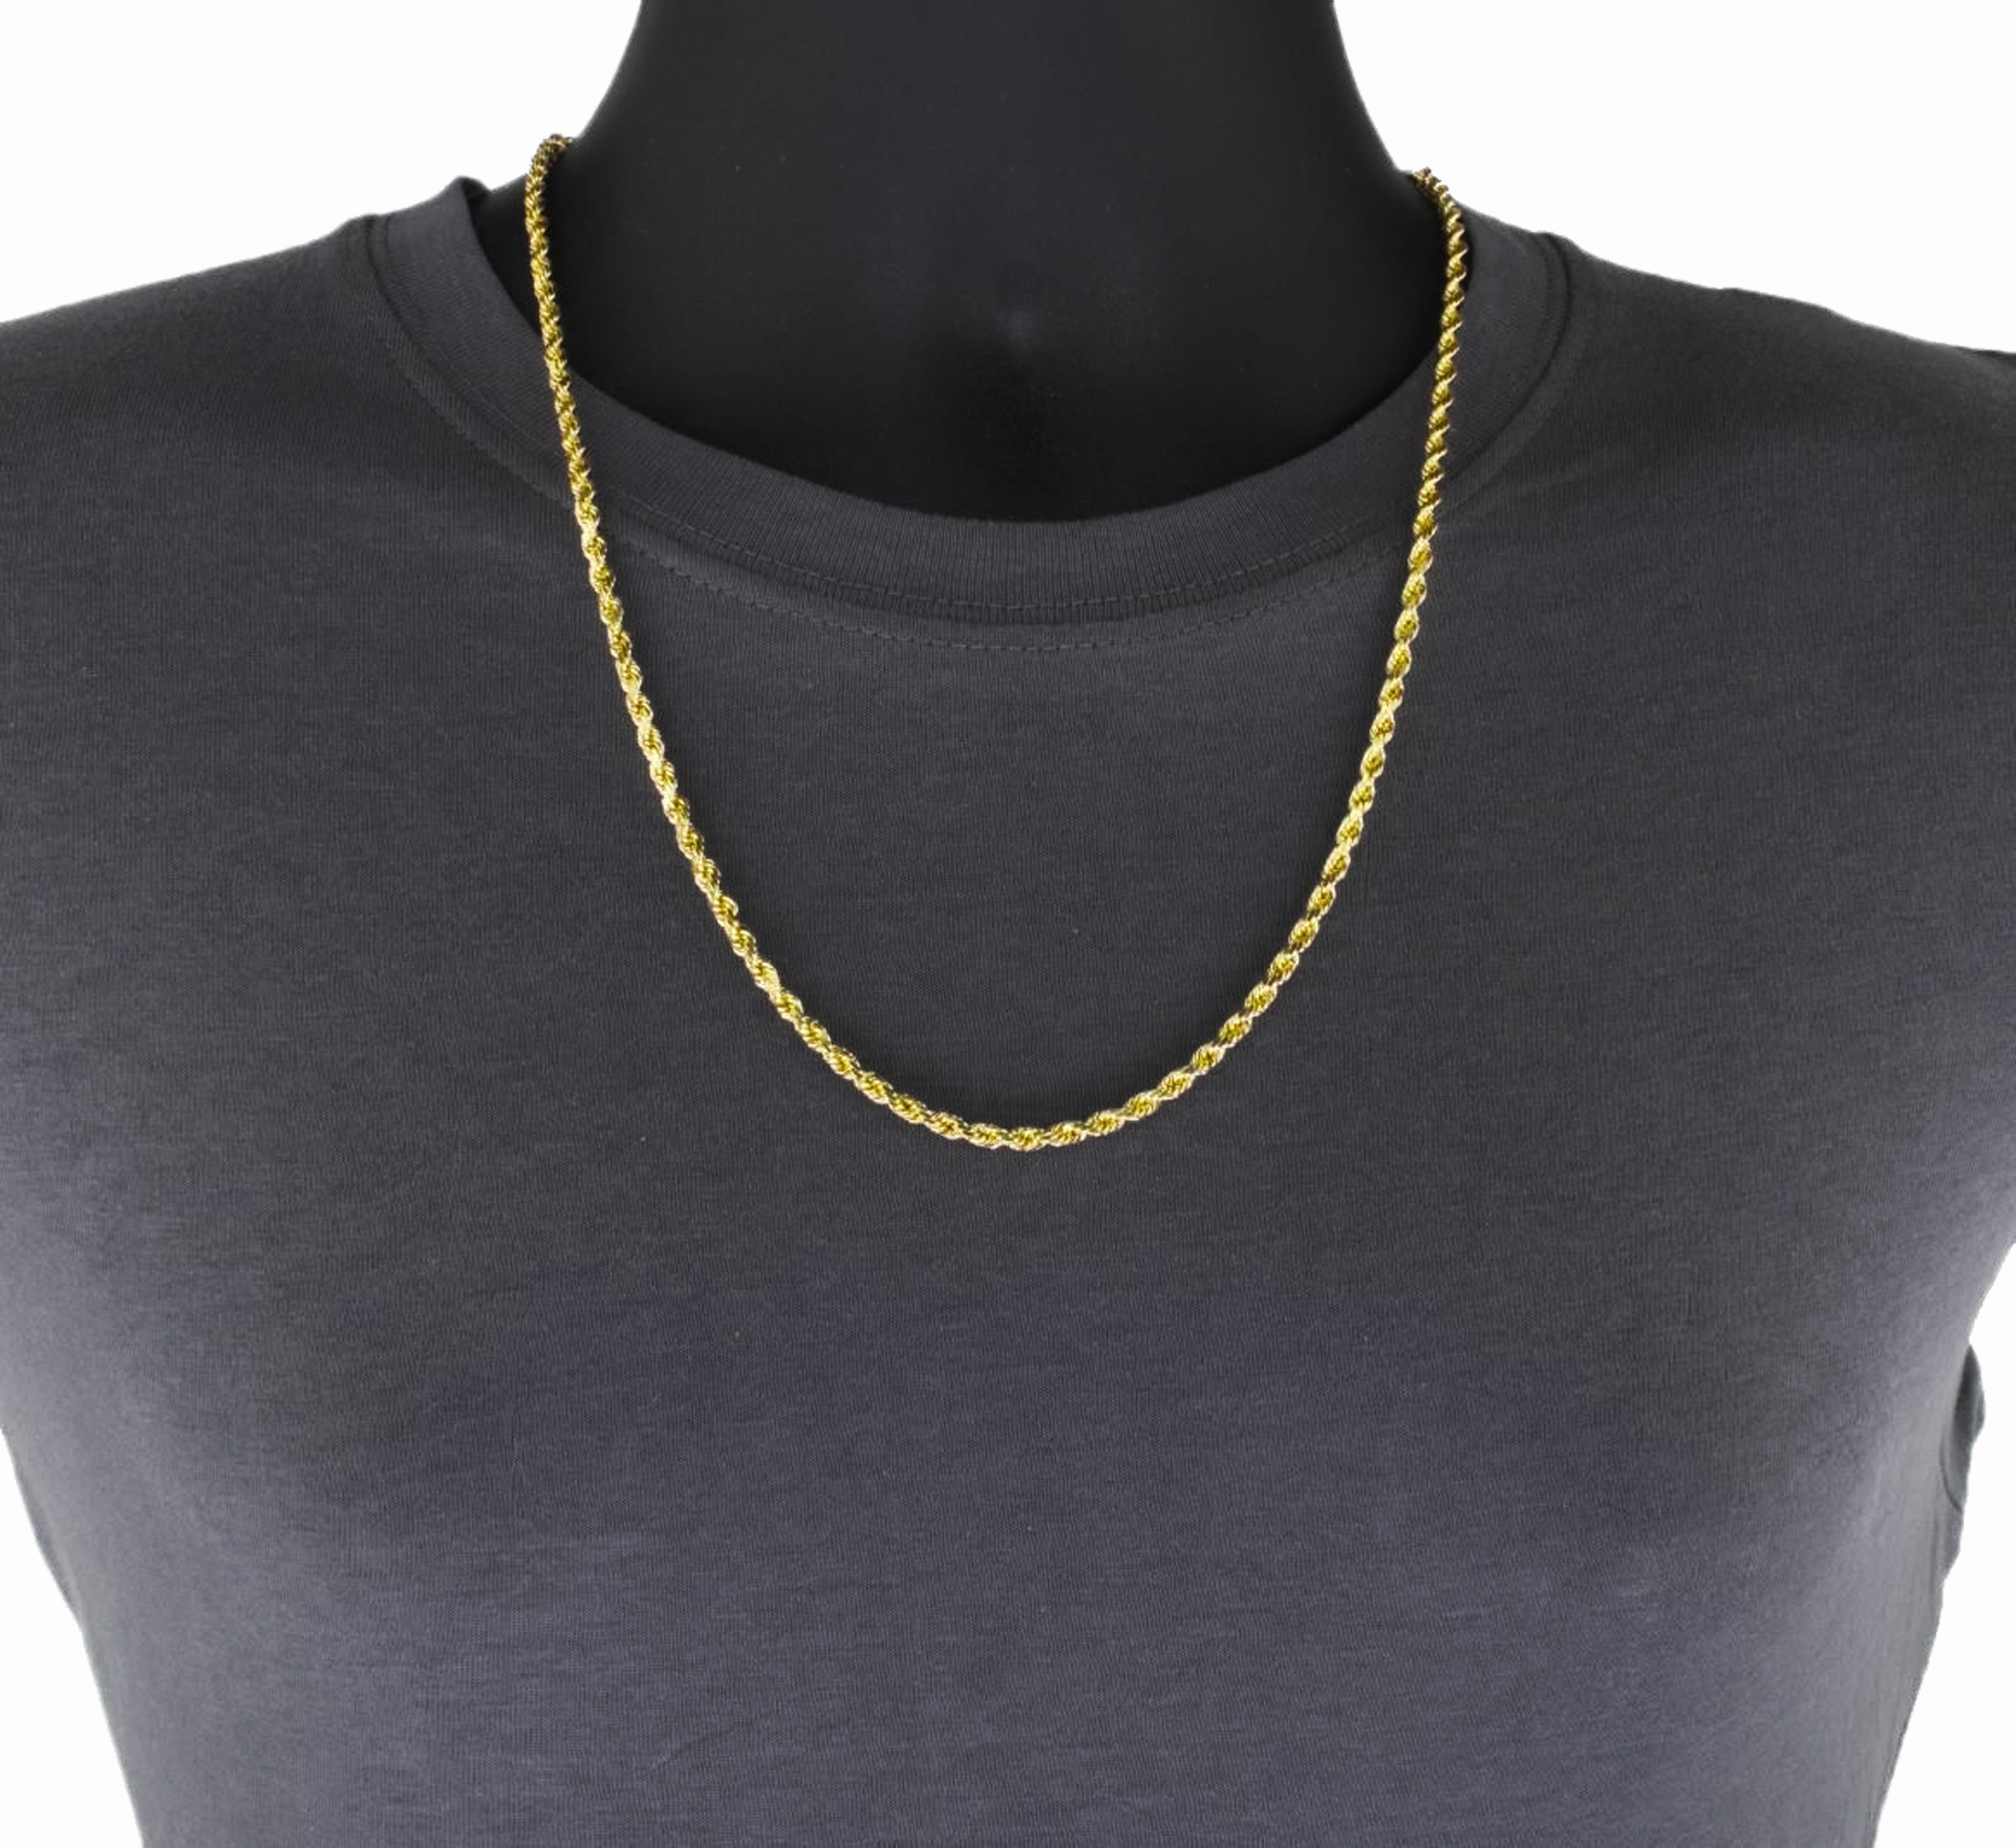 10k Solid Yellow Gold 5mm Wide Diamond Cut Italian Rope Chain Necklace 20